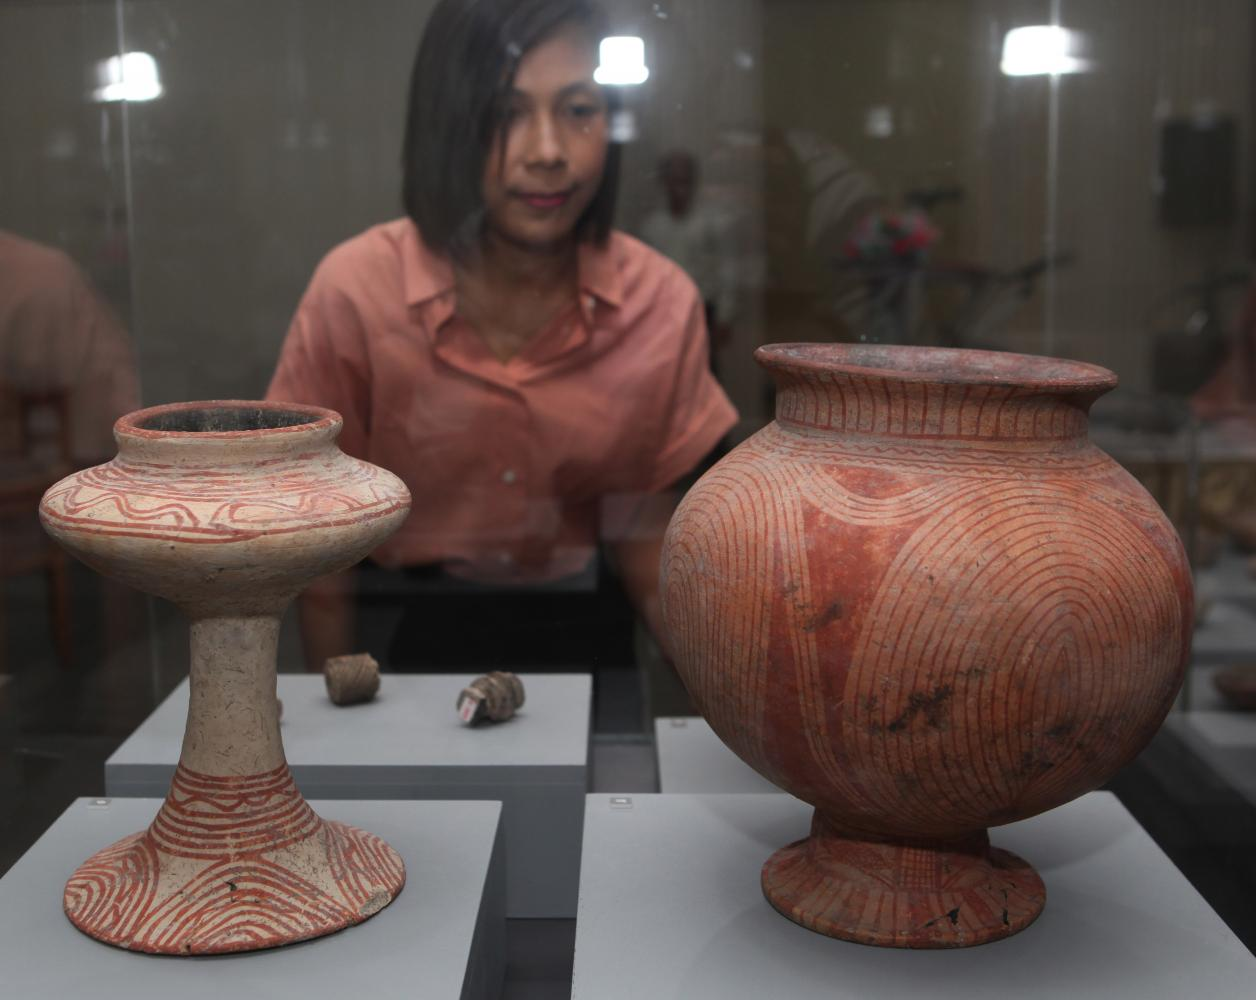 New archaeological centre in Udon Thani